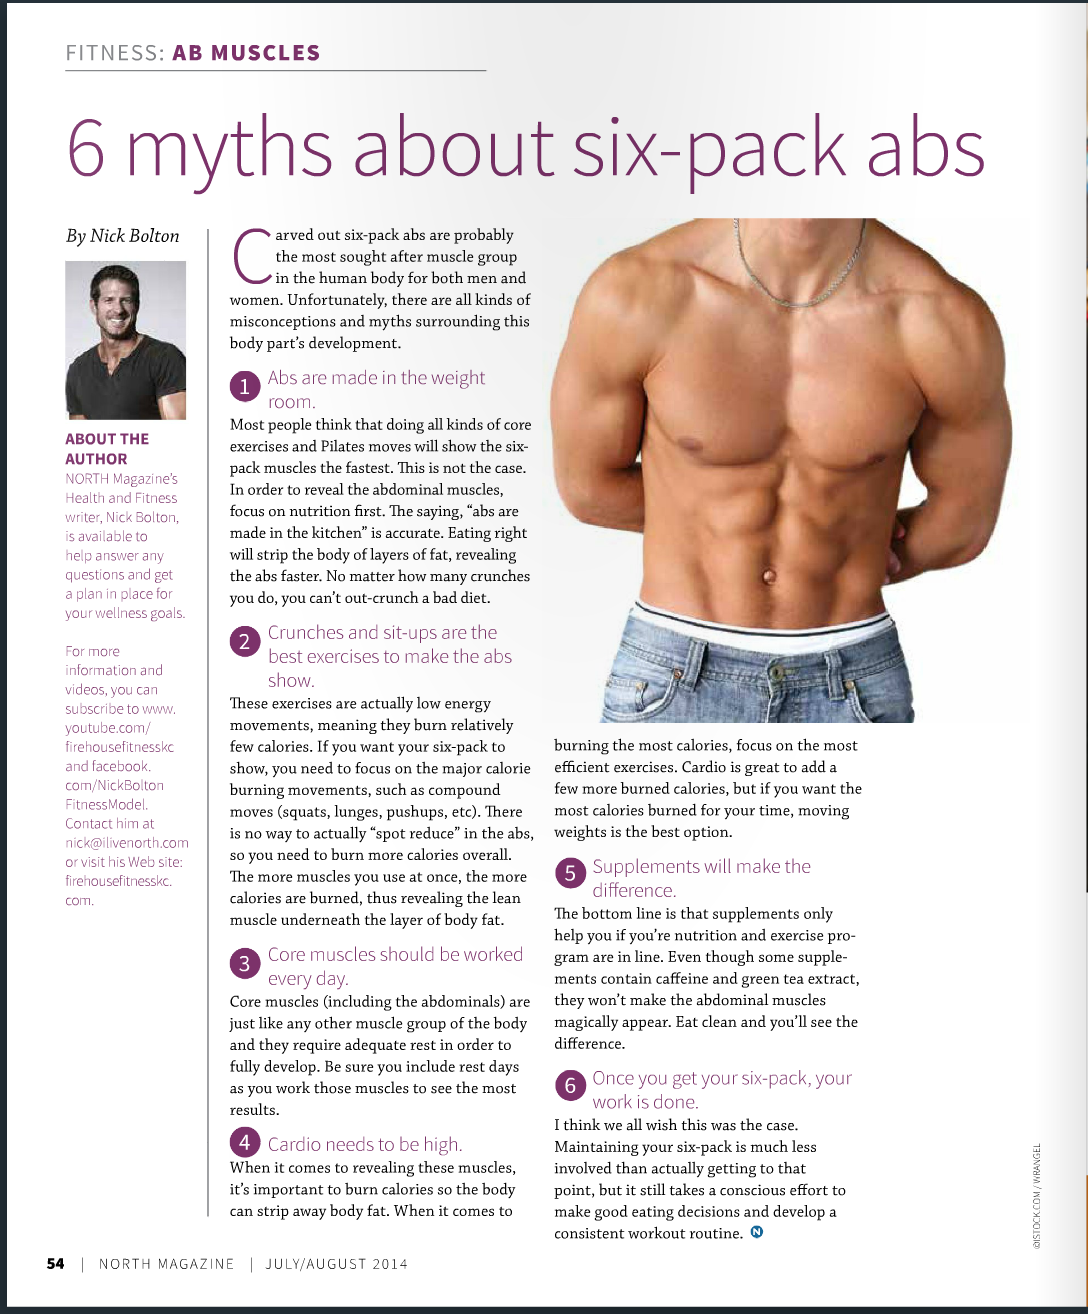 How To Get Six Pack Abs - YouTube